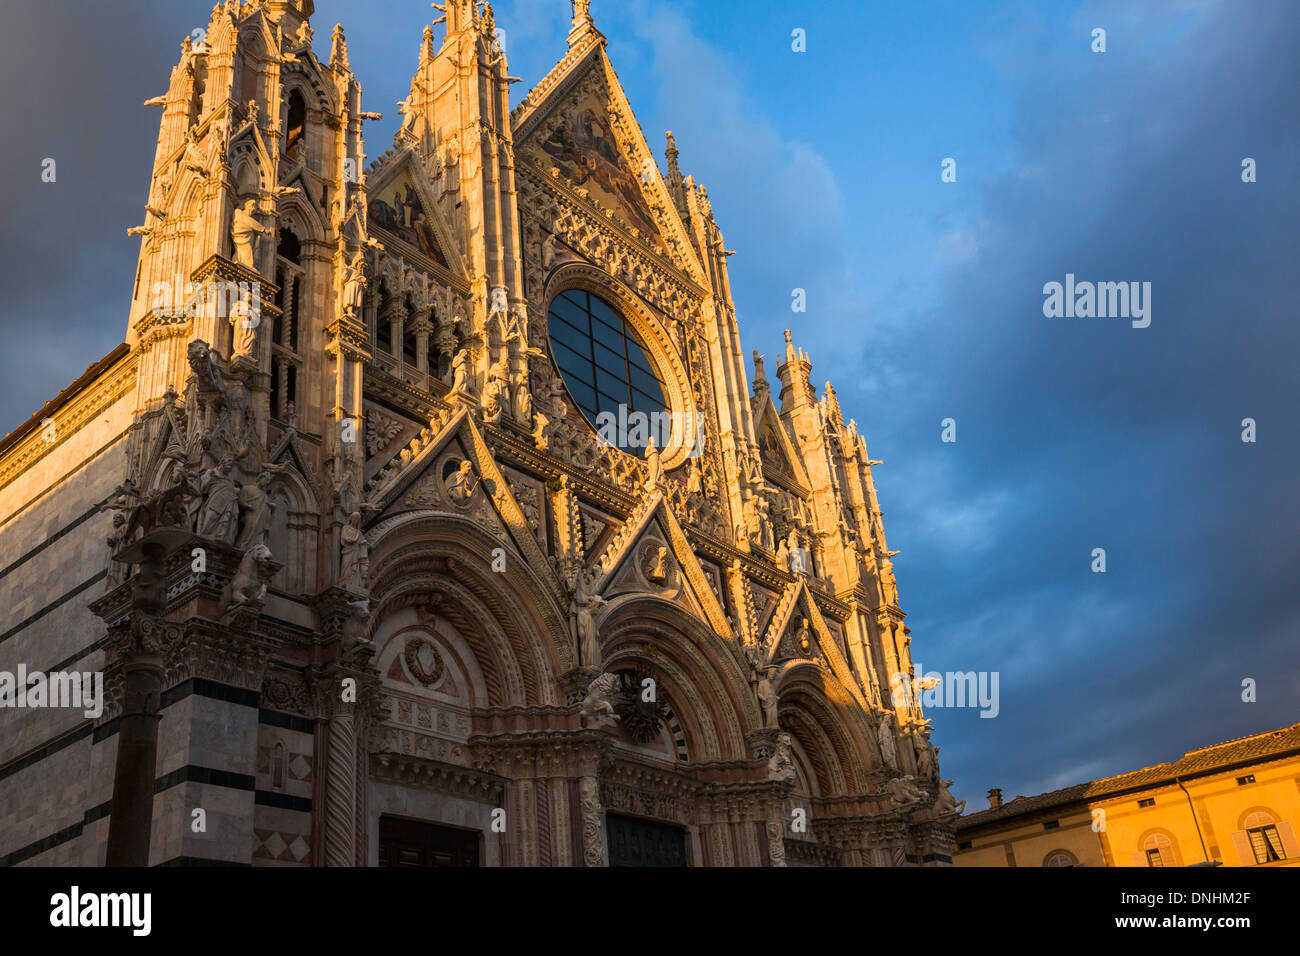 Low angle view of a cathedral, Siena Cathedral, Siena, Siena Province, Tuscany, Italy Stock Photo